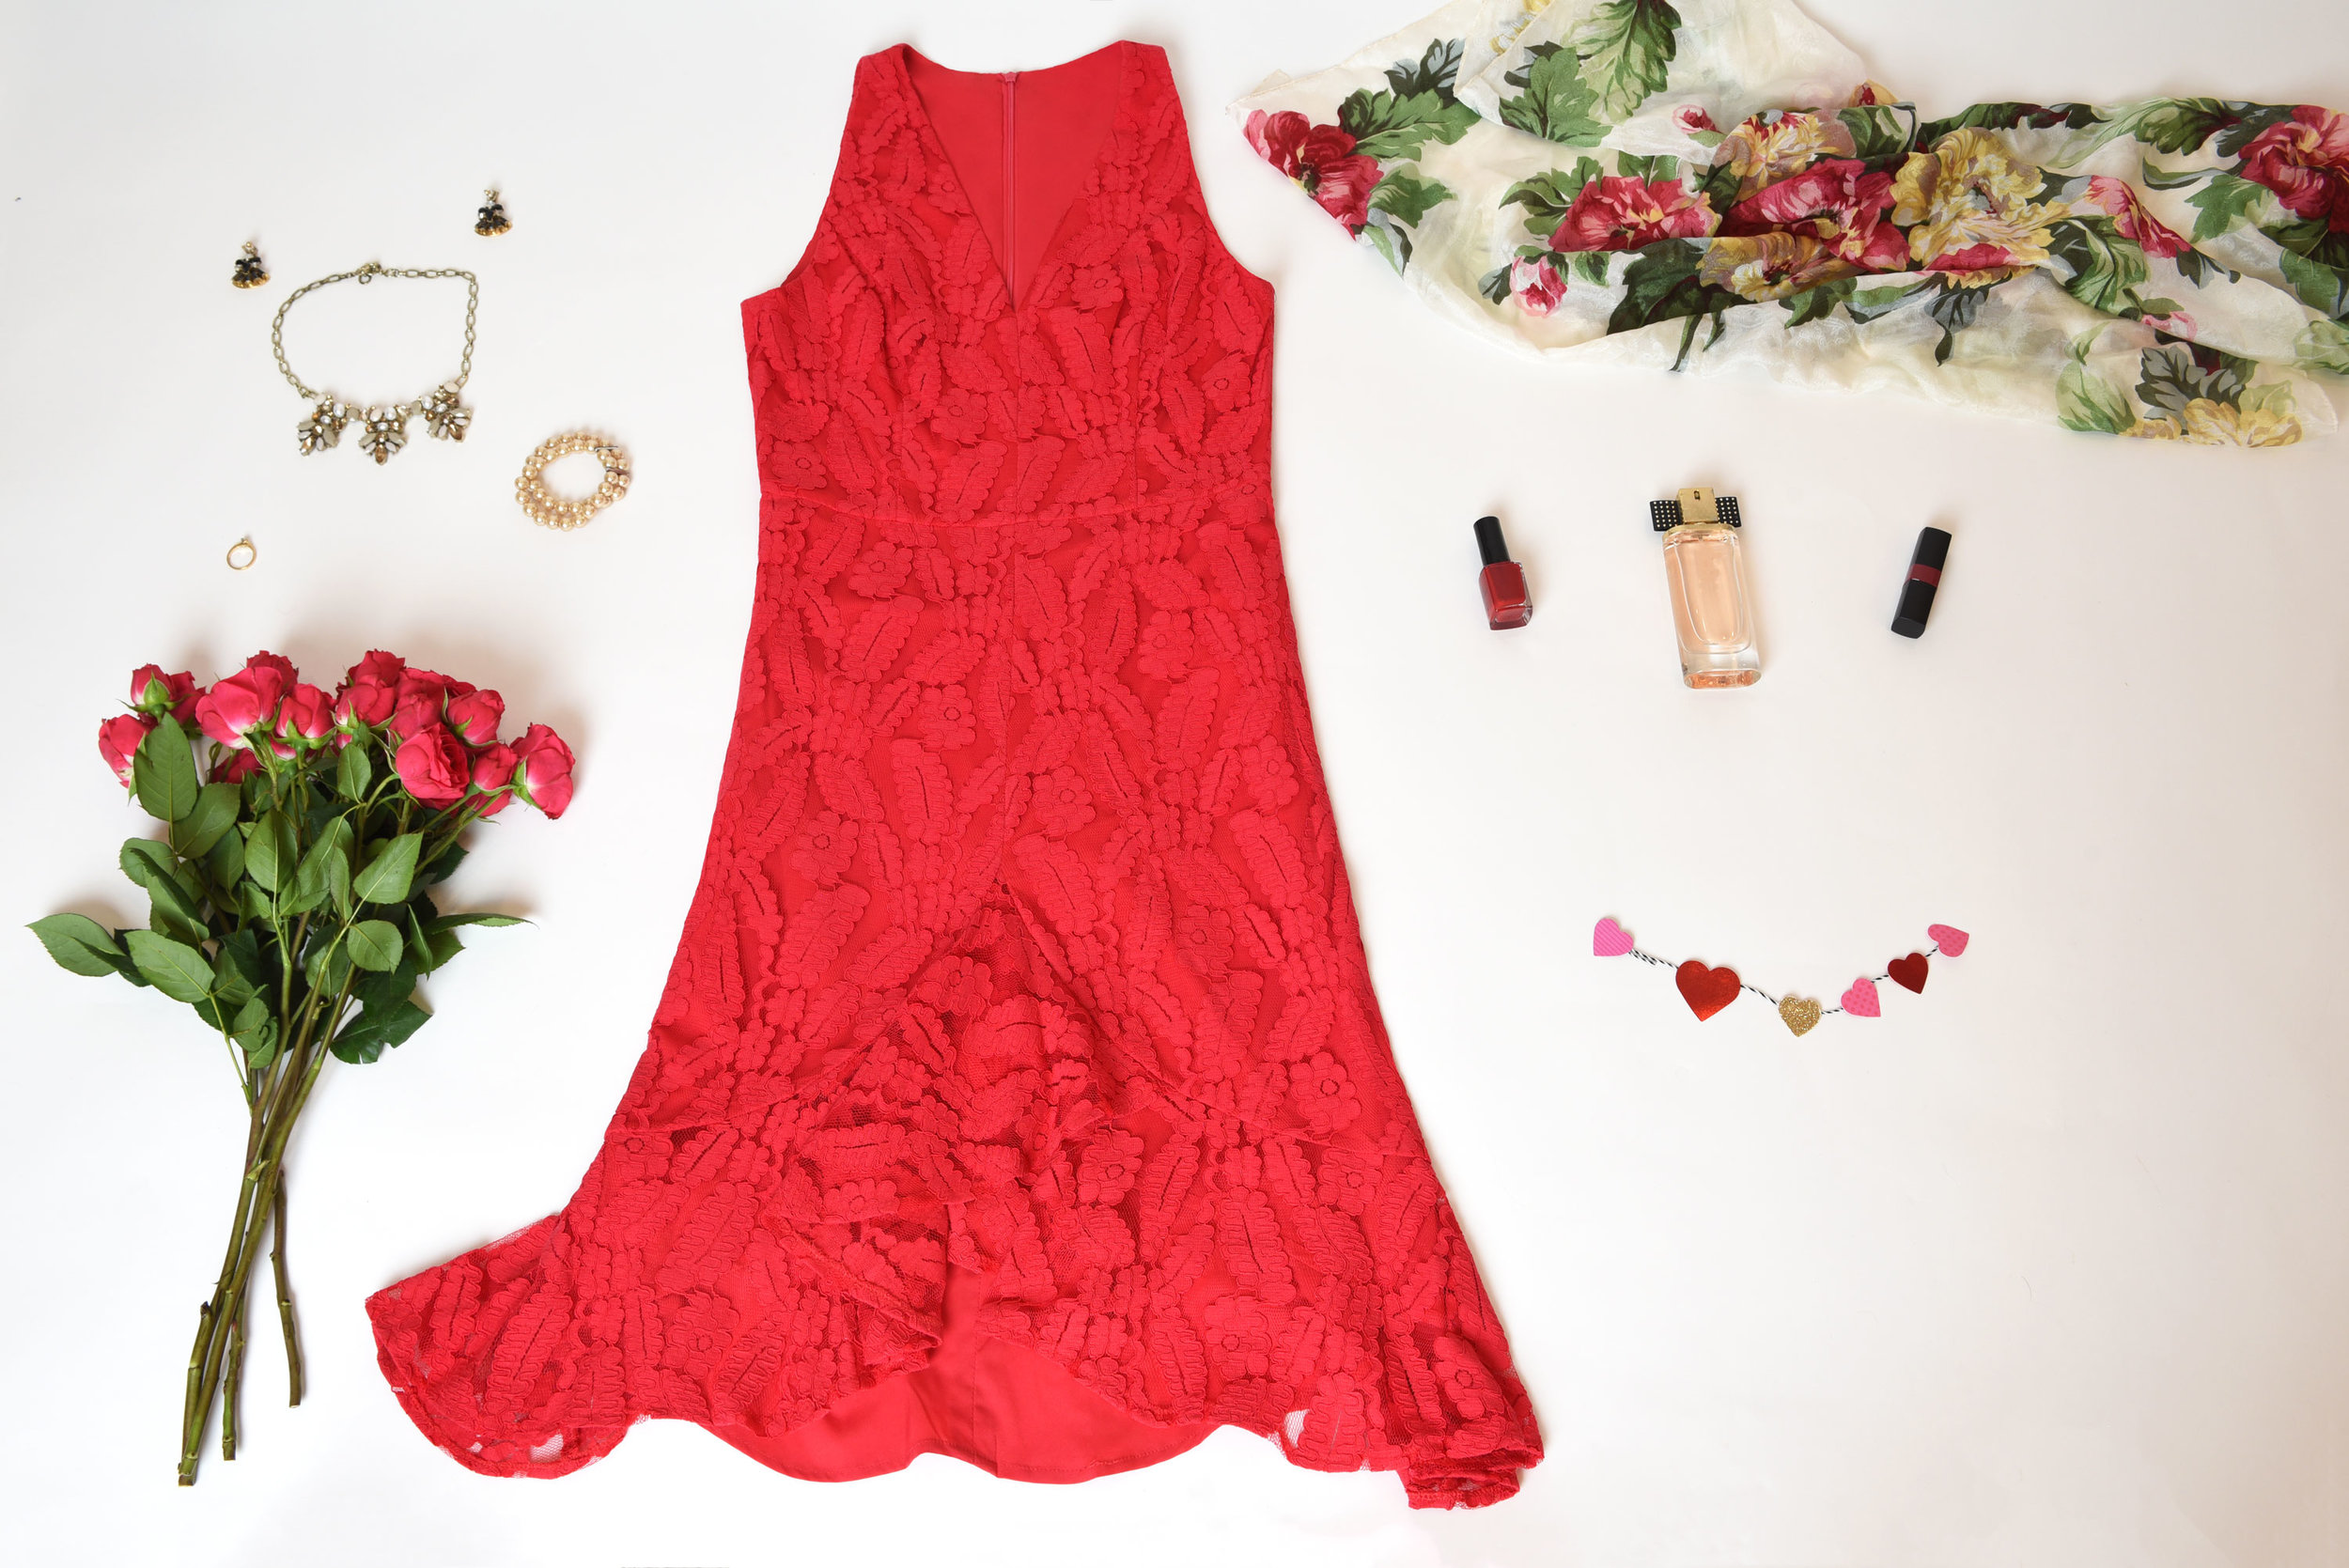 Between BBQs and pool parties, it's easy to let summer fly by. Our slow-down solution? A relaxing, romantic weekend with your partner. Whether you retreat to a spa or spend the weekend on a beach, our  Sophia dress  is the perfect pick for date night. After a long day of relaxation and quality time together, slip into this fun little number and get ready to take your sweetie's breath away.